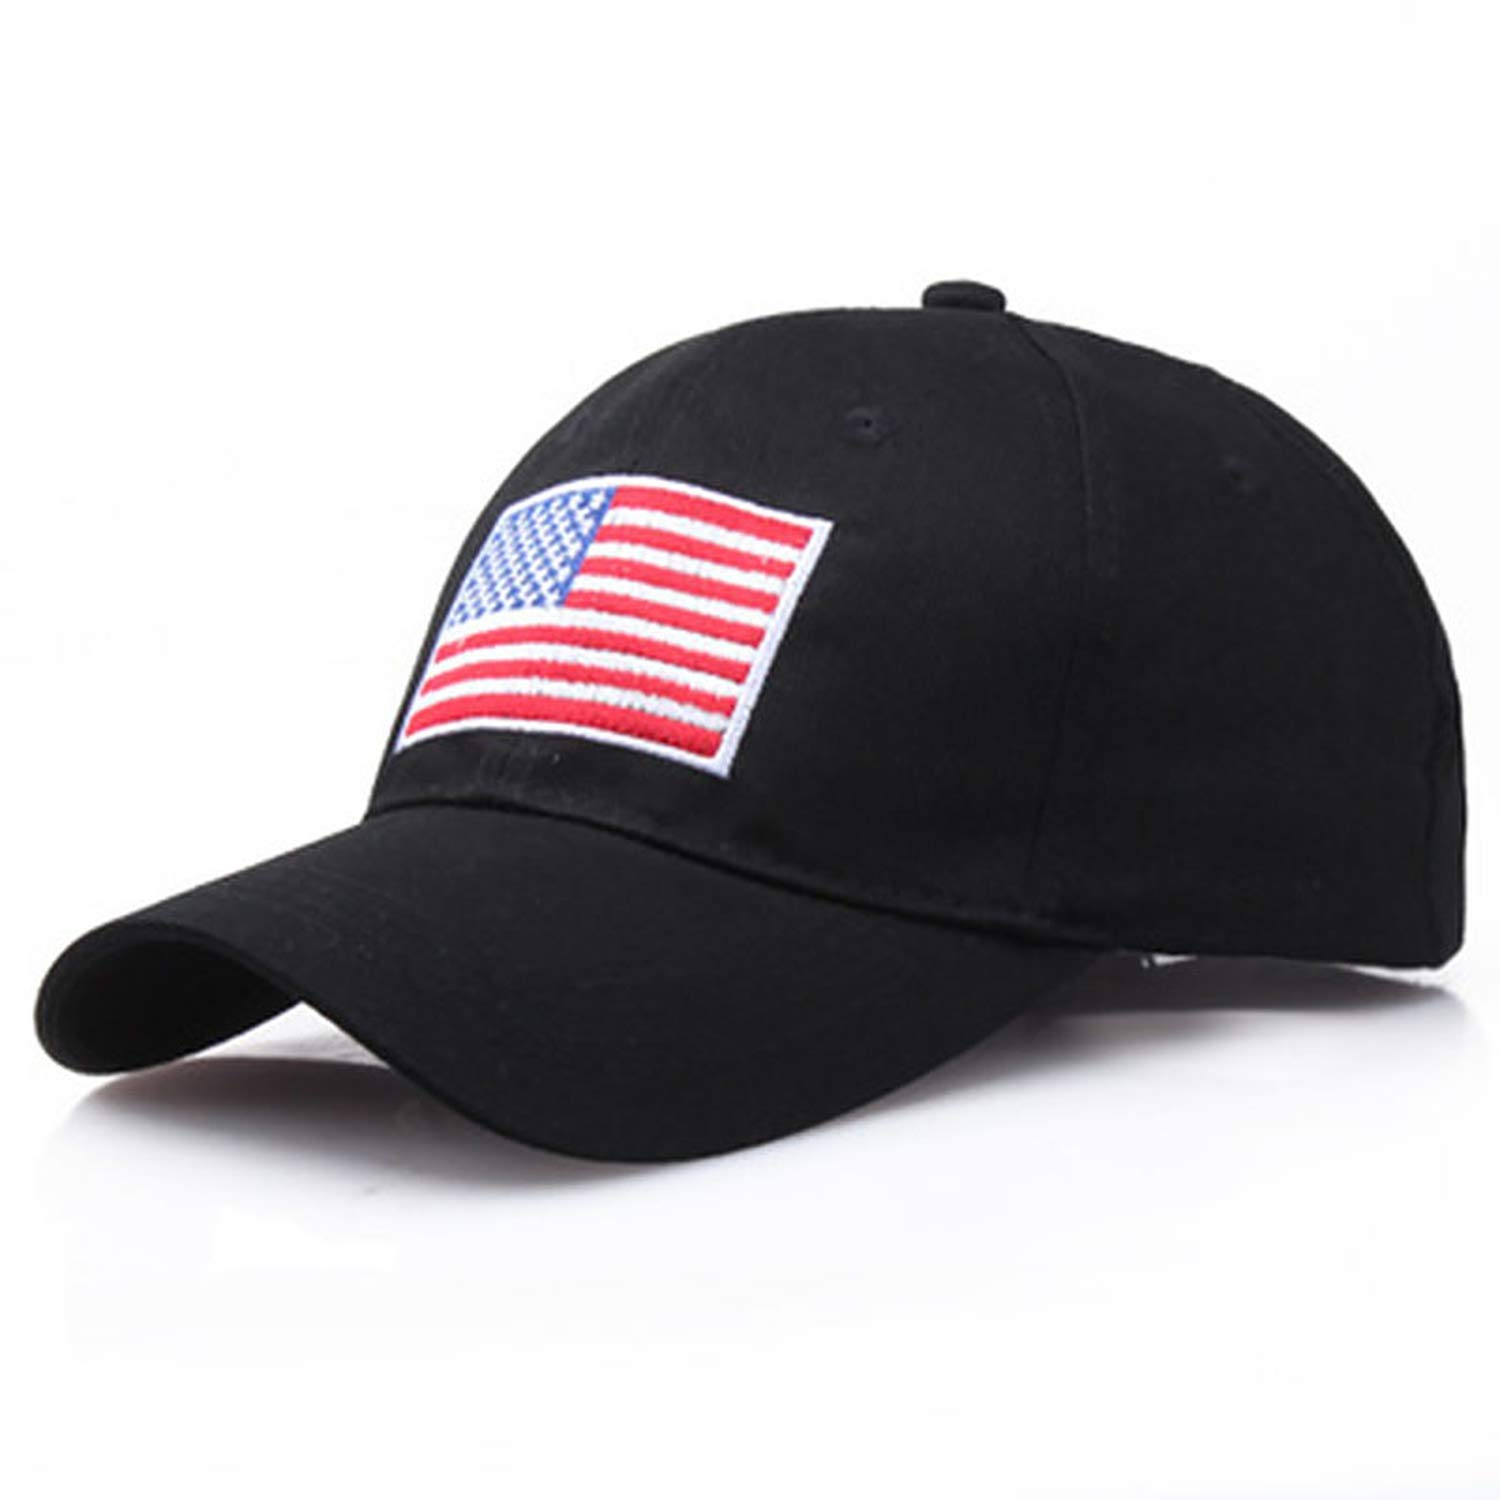 US Flag Embroidery Cotton Adjustable Baseball Cap Women Sun hat Men Sports Hats Fashion Casual Cap Travel caps